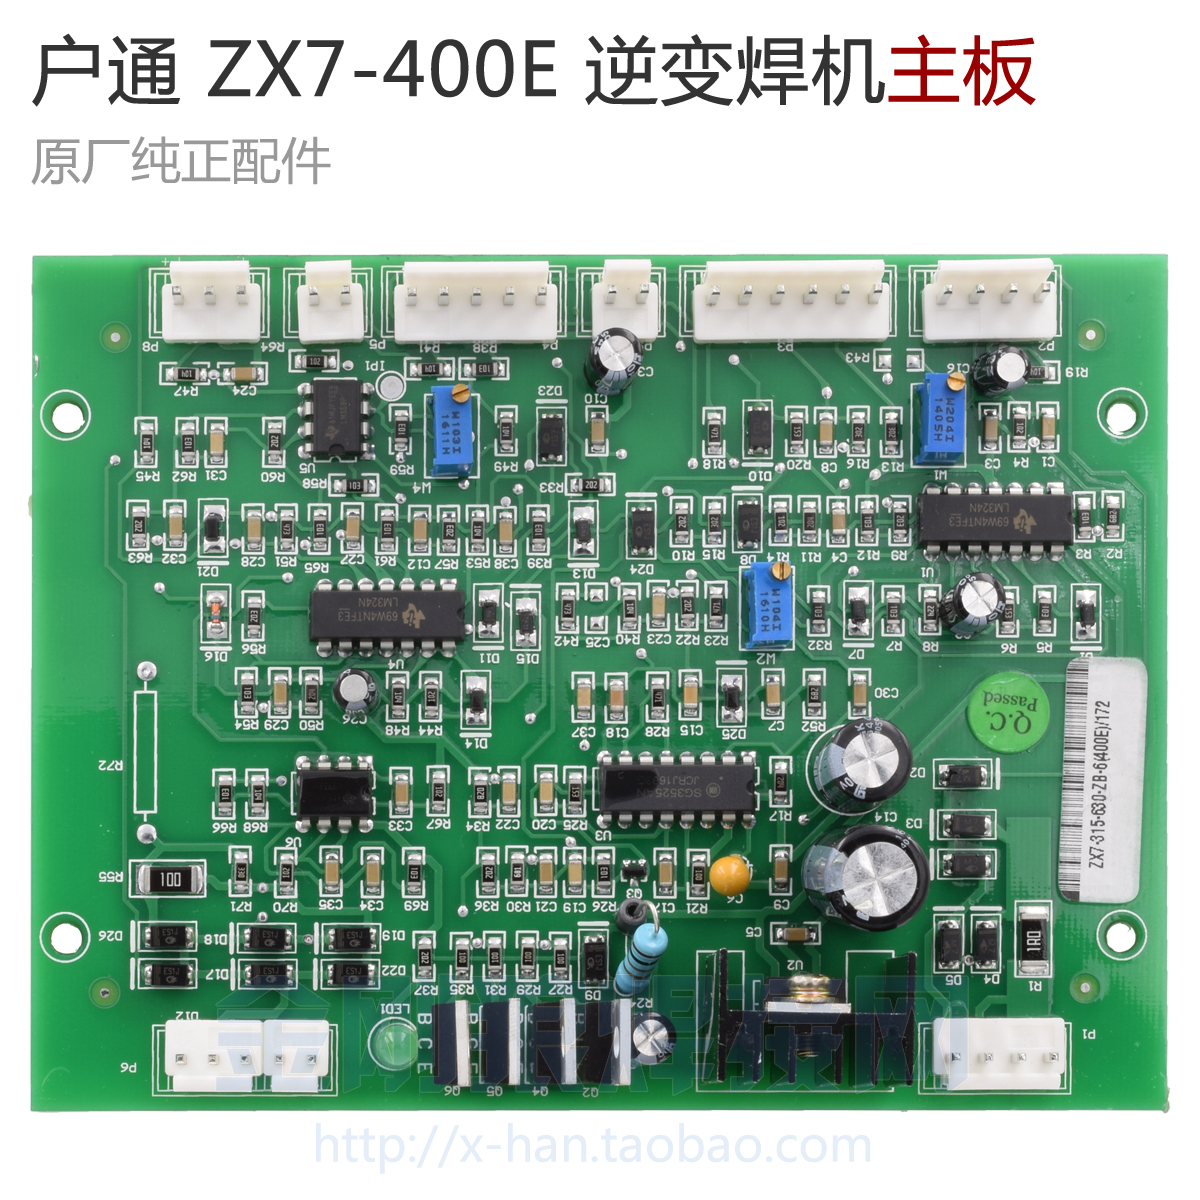 YDT home ZX7-400E IGBT inverter welding machine mainboard control board circuit board fittings zx7 250s single tube igbt double voltage dc welding inverter upper board control board circuit board maintenance replacement